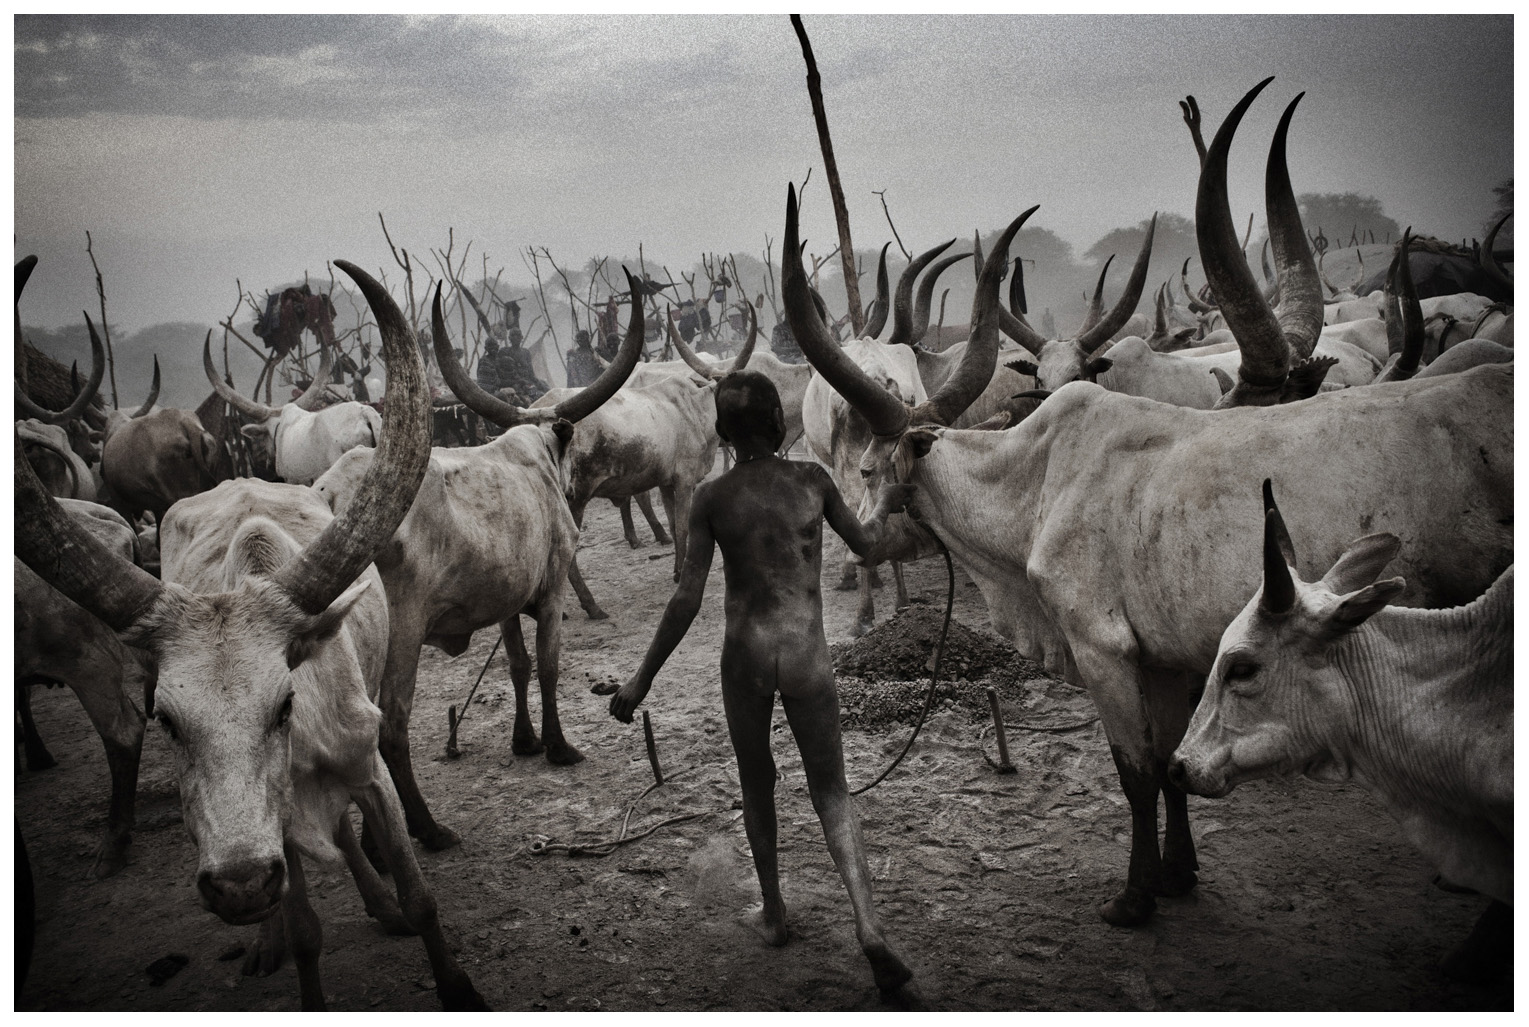 South Sudan. 23 March 2011.